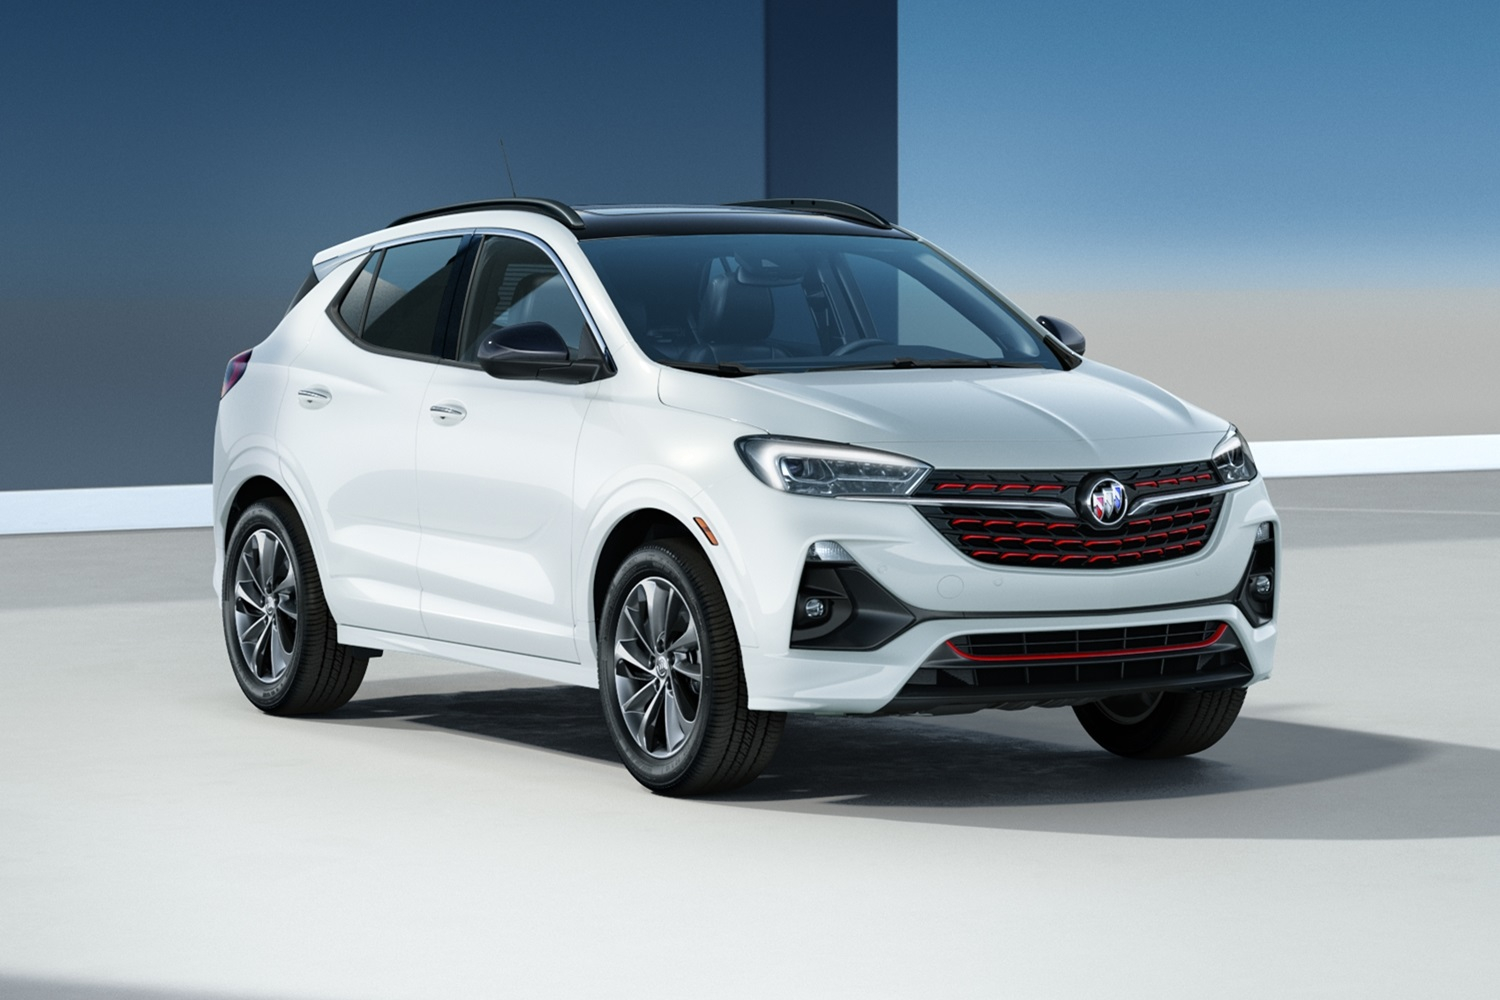 2020 Buick Encore Gx Vs. Buick Encore: Dimensions | Gm Authority 2022 Buick Encore Gx Build, Curb Weight, Cargo Space